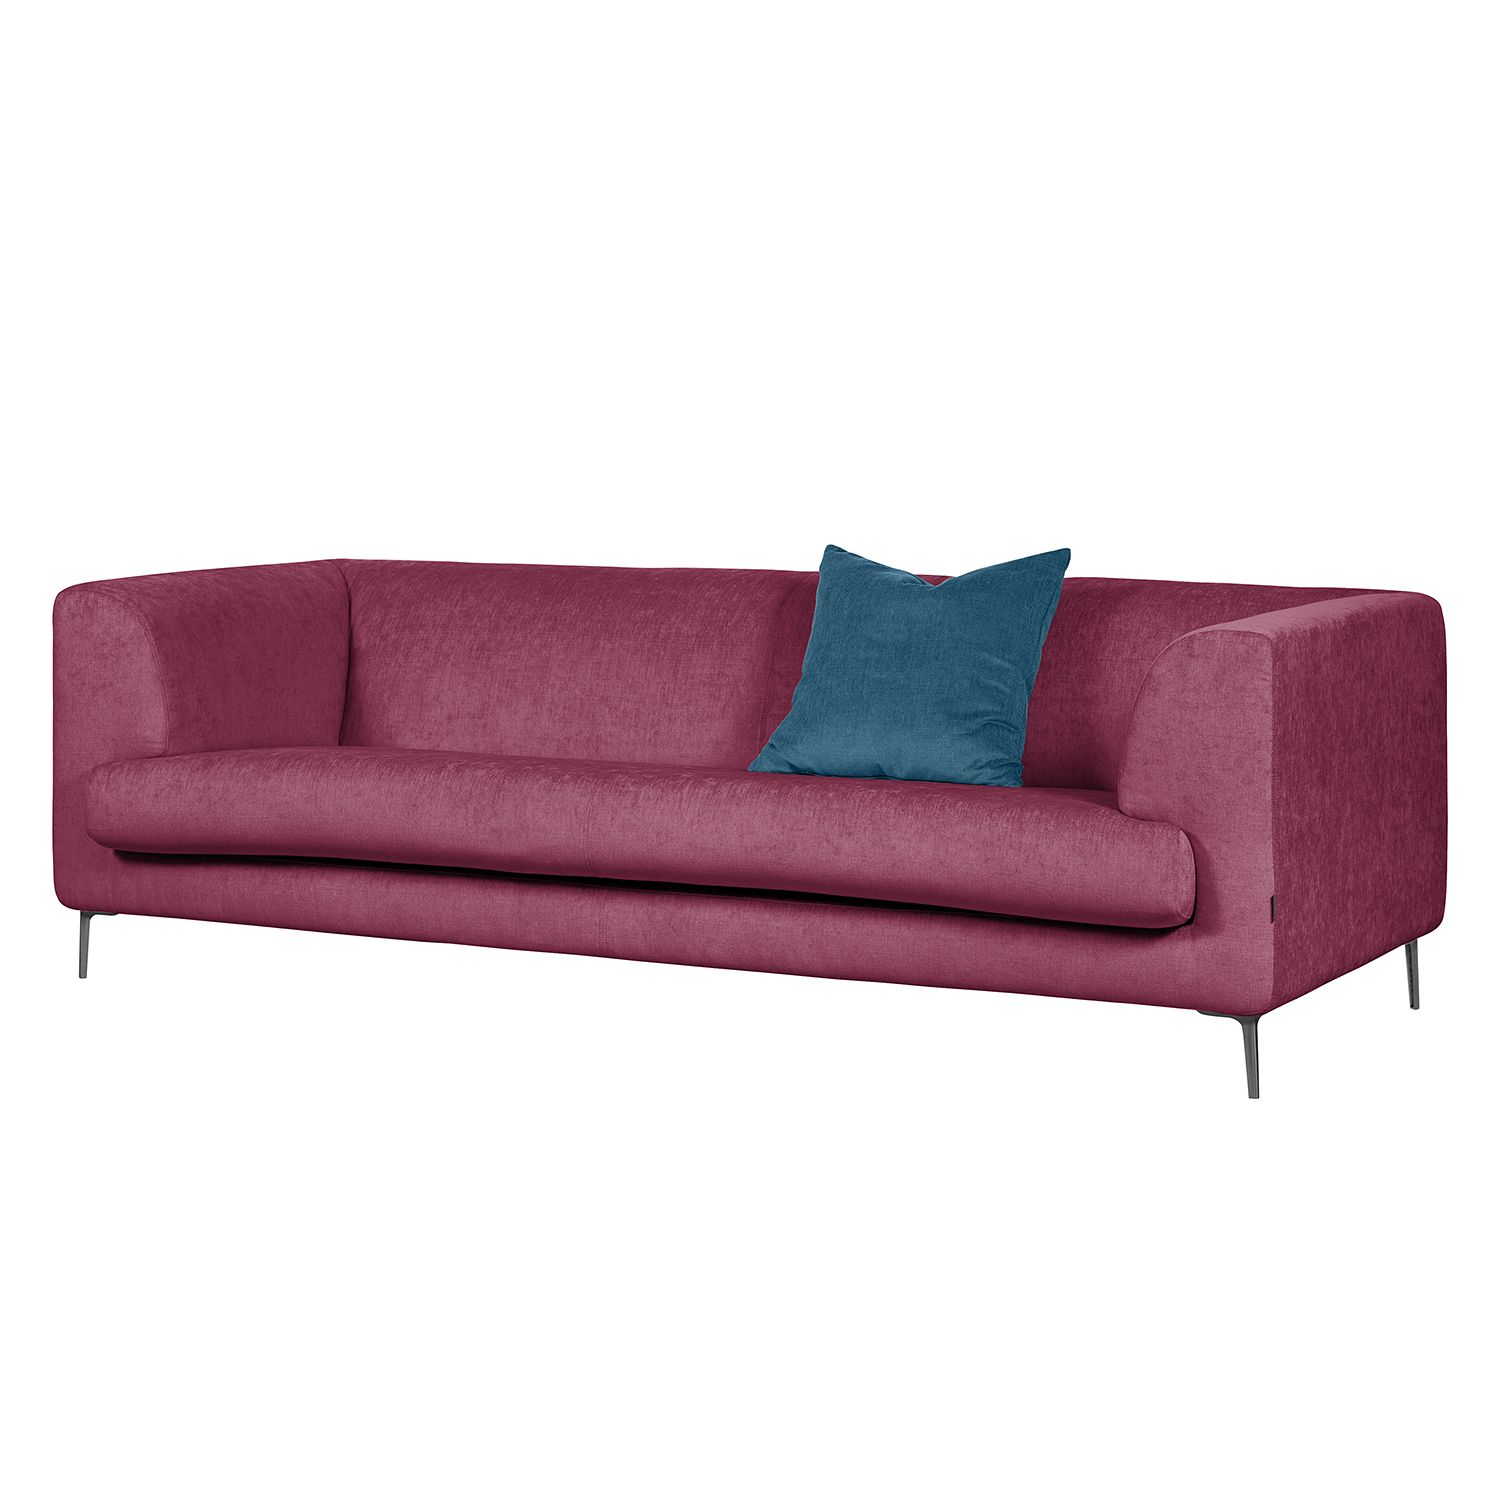 Sofa Sombret (3-Sitzer) - Webstoff - Lipstick Pink, Says Who